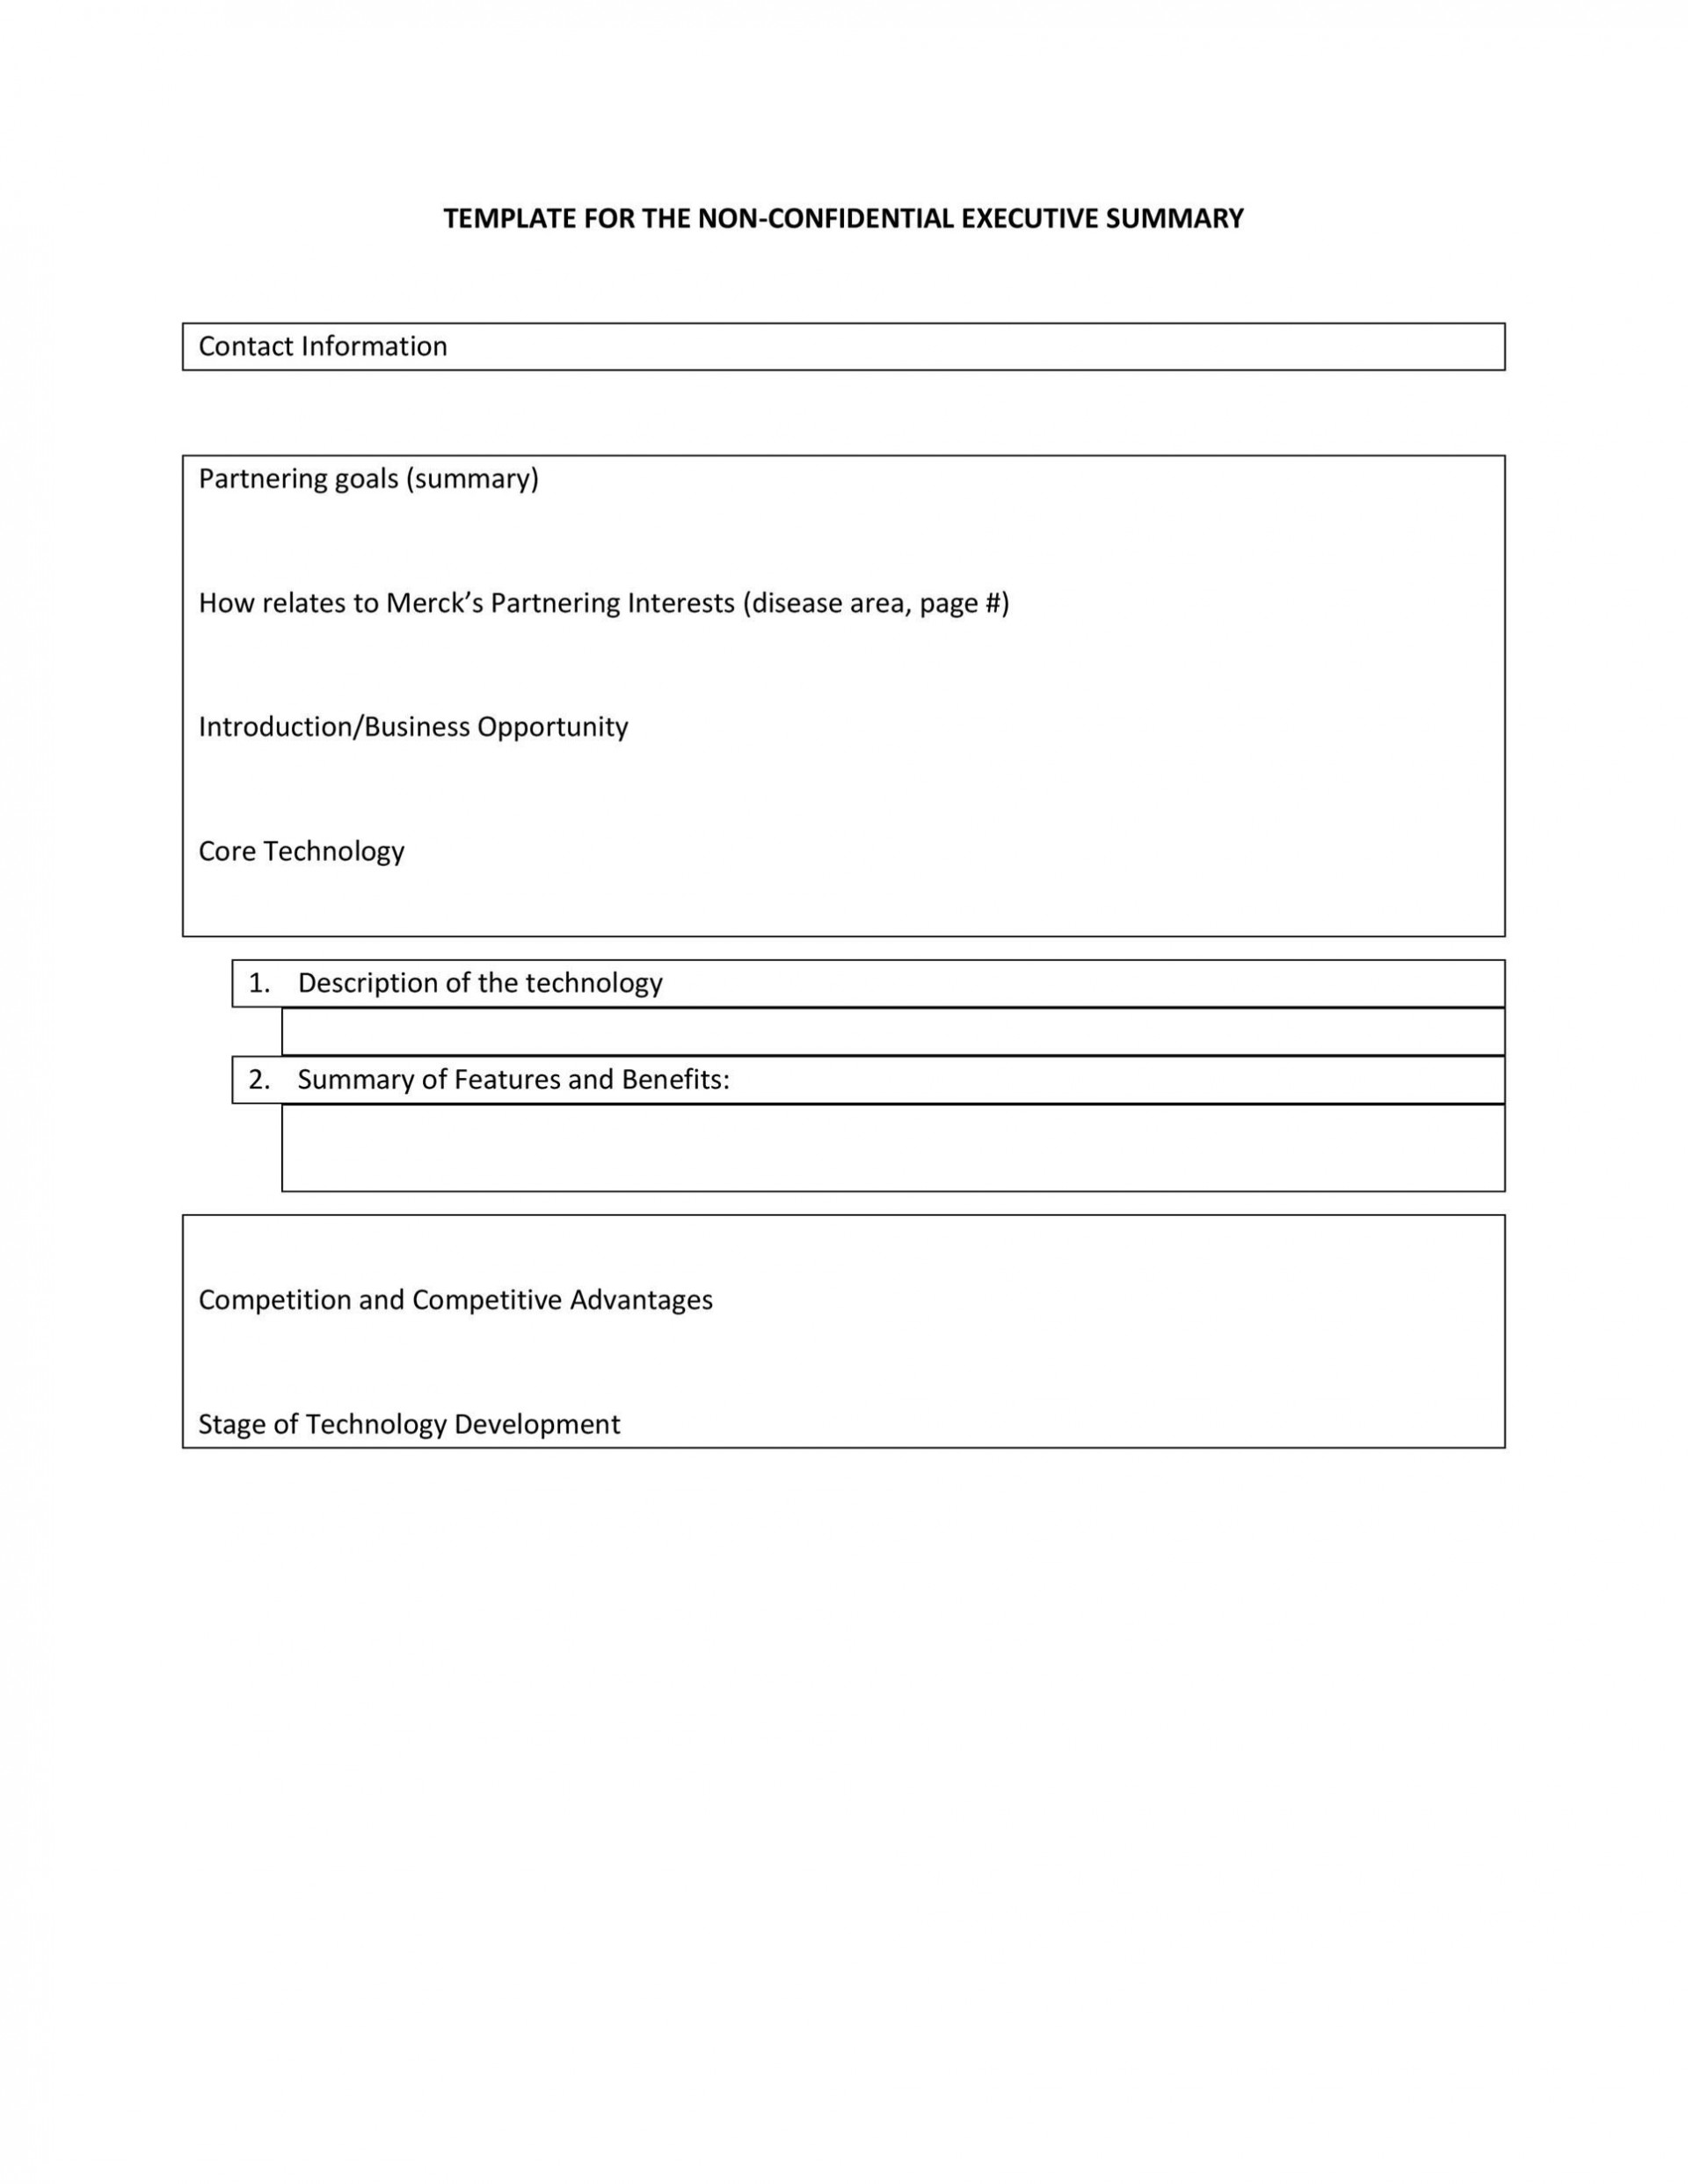 007 Awful Executive Summary Word Template Free Download Example 1920